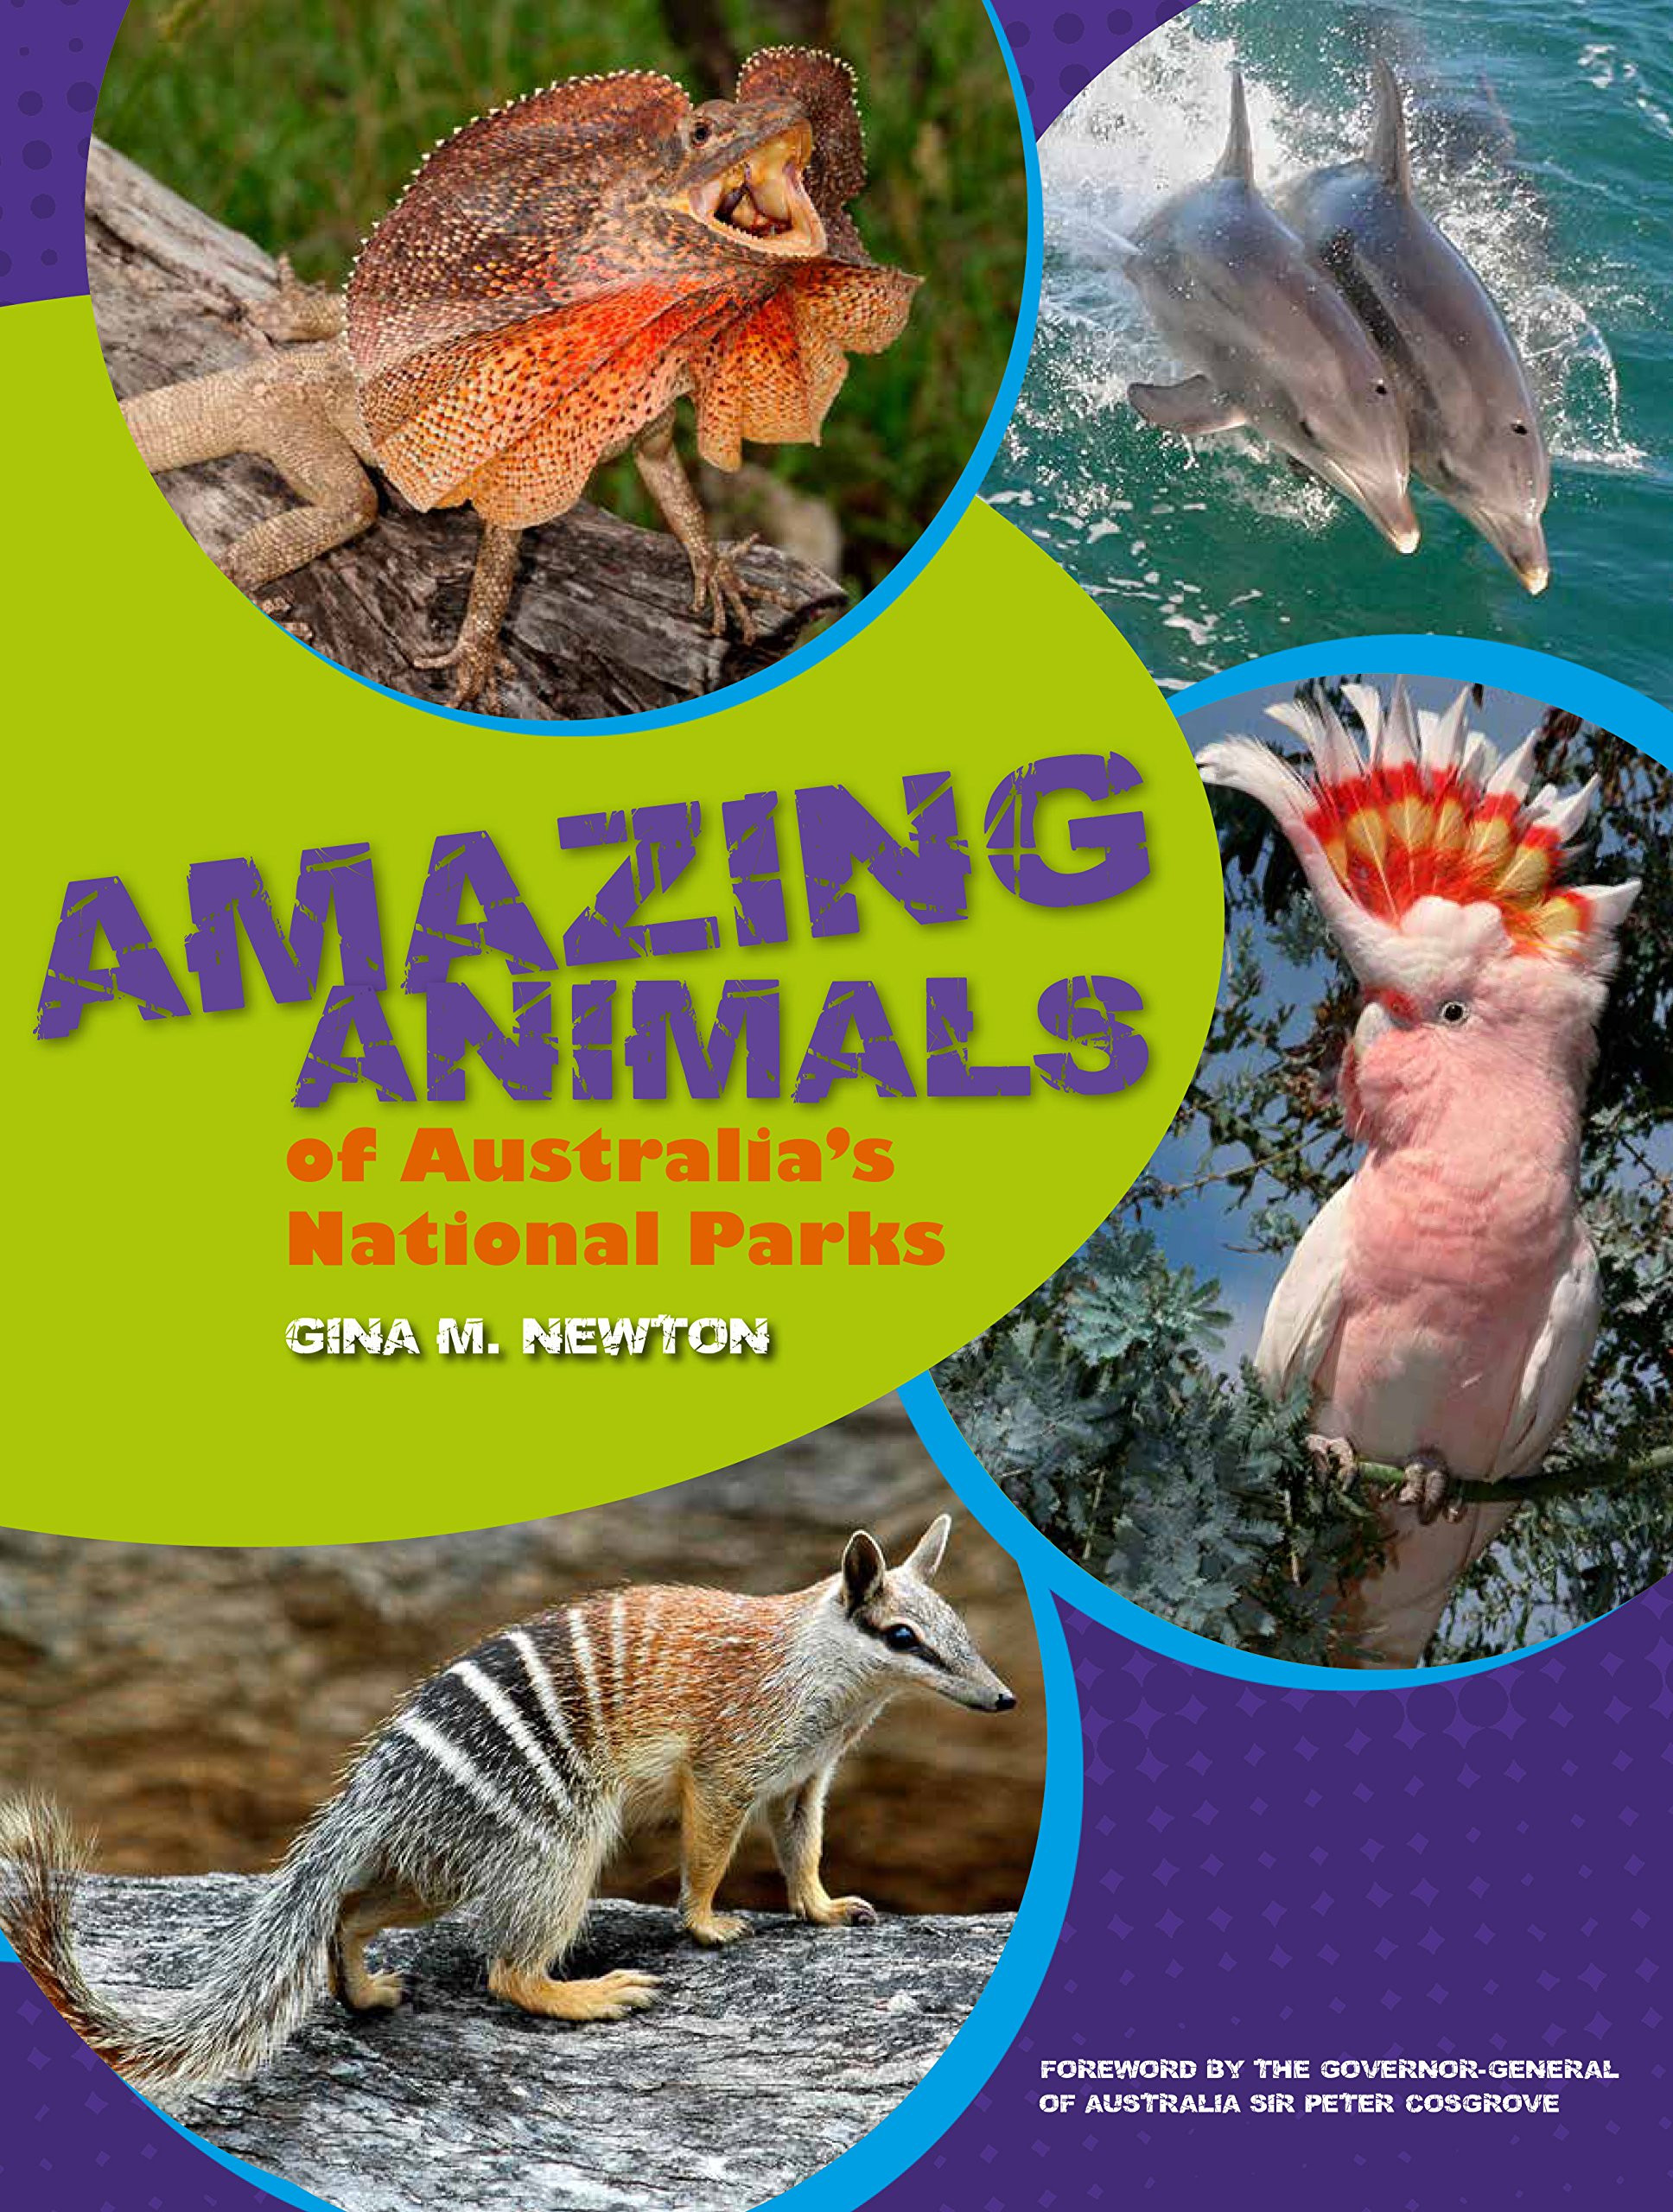 Amazing Animals of Australia's National Parks by Gina Newton, ISBN: 9780642278883